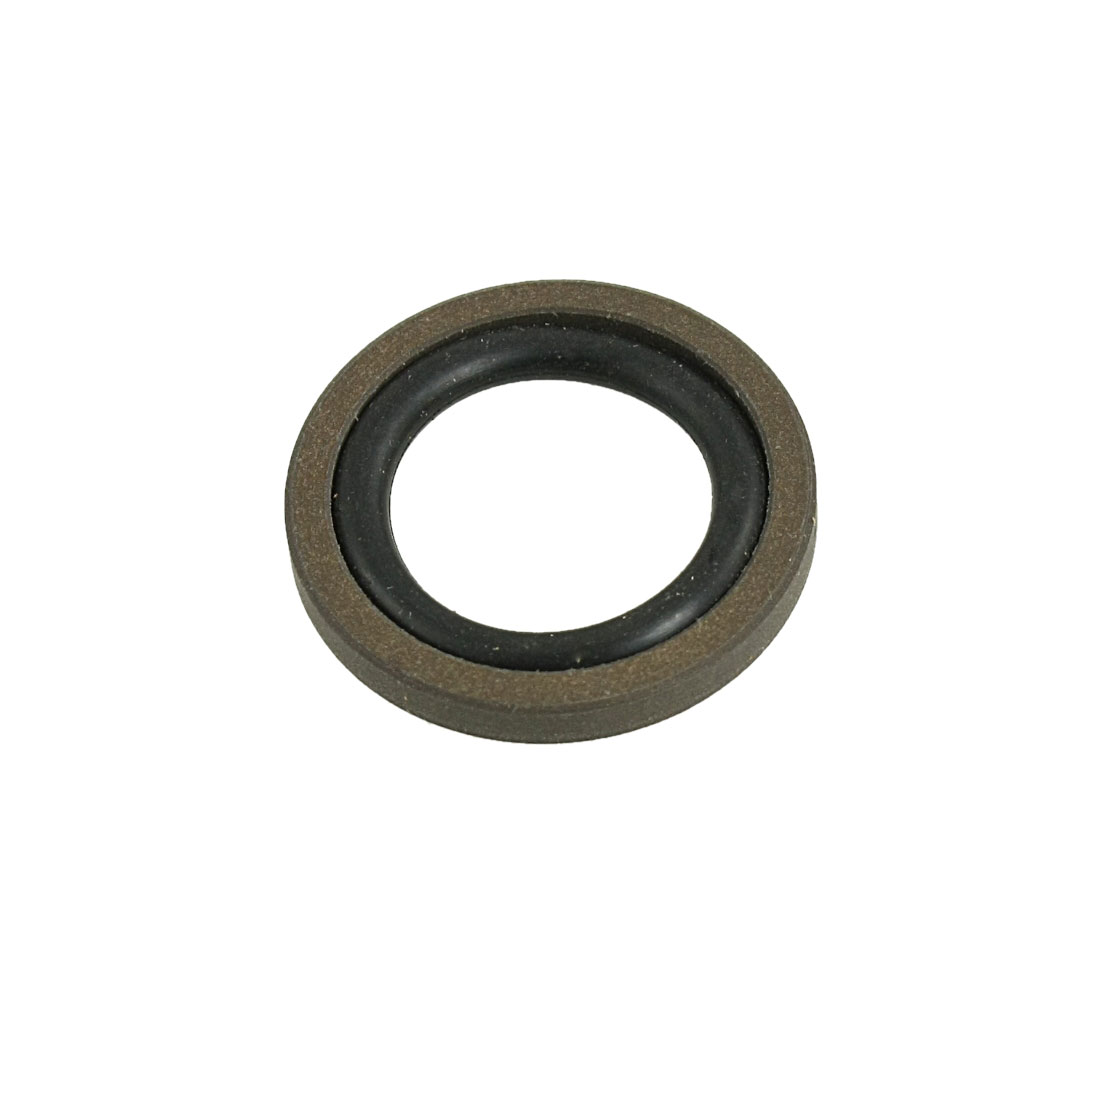 32mm x 20mm x 4mm NBR PTFE Glyd Ring Piston Seal